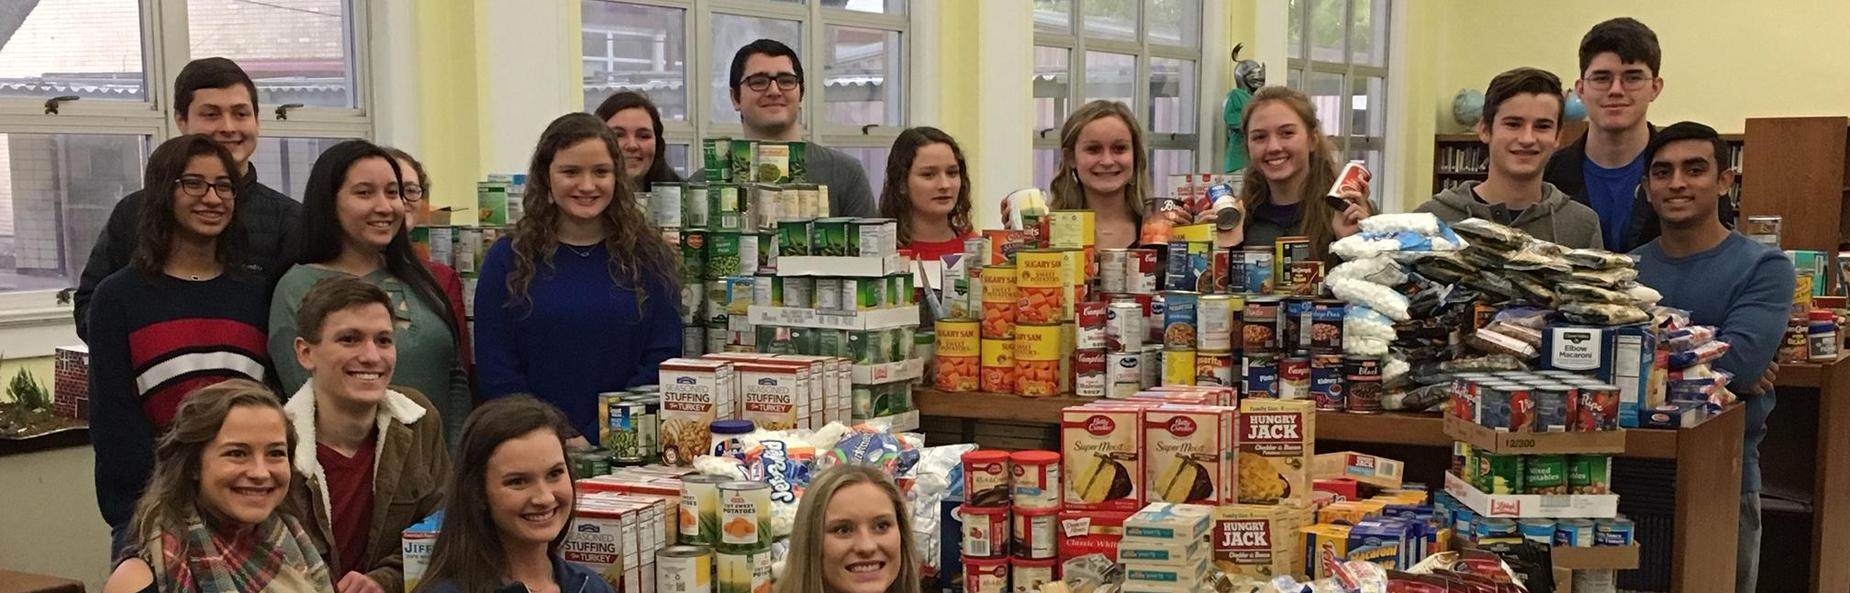 High School Students with food for food drive